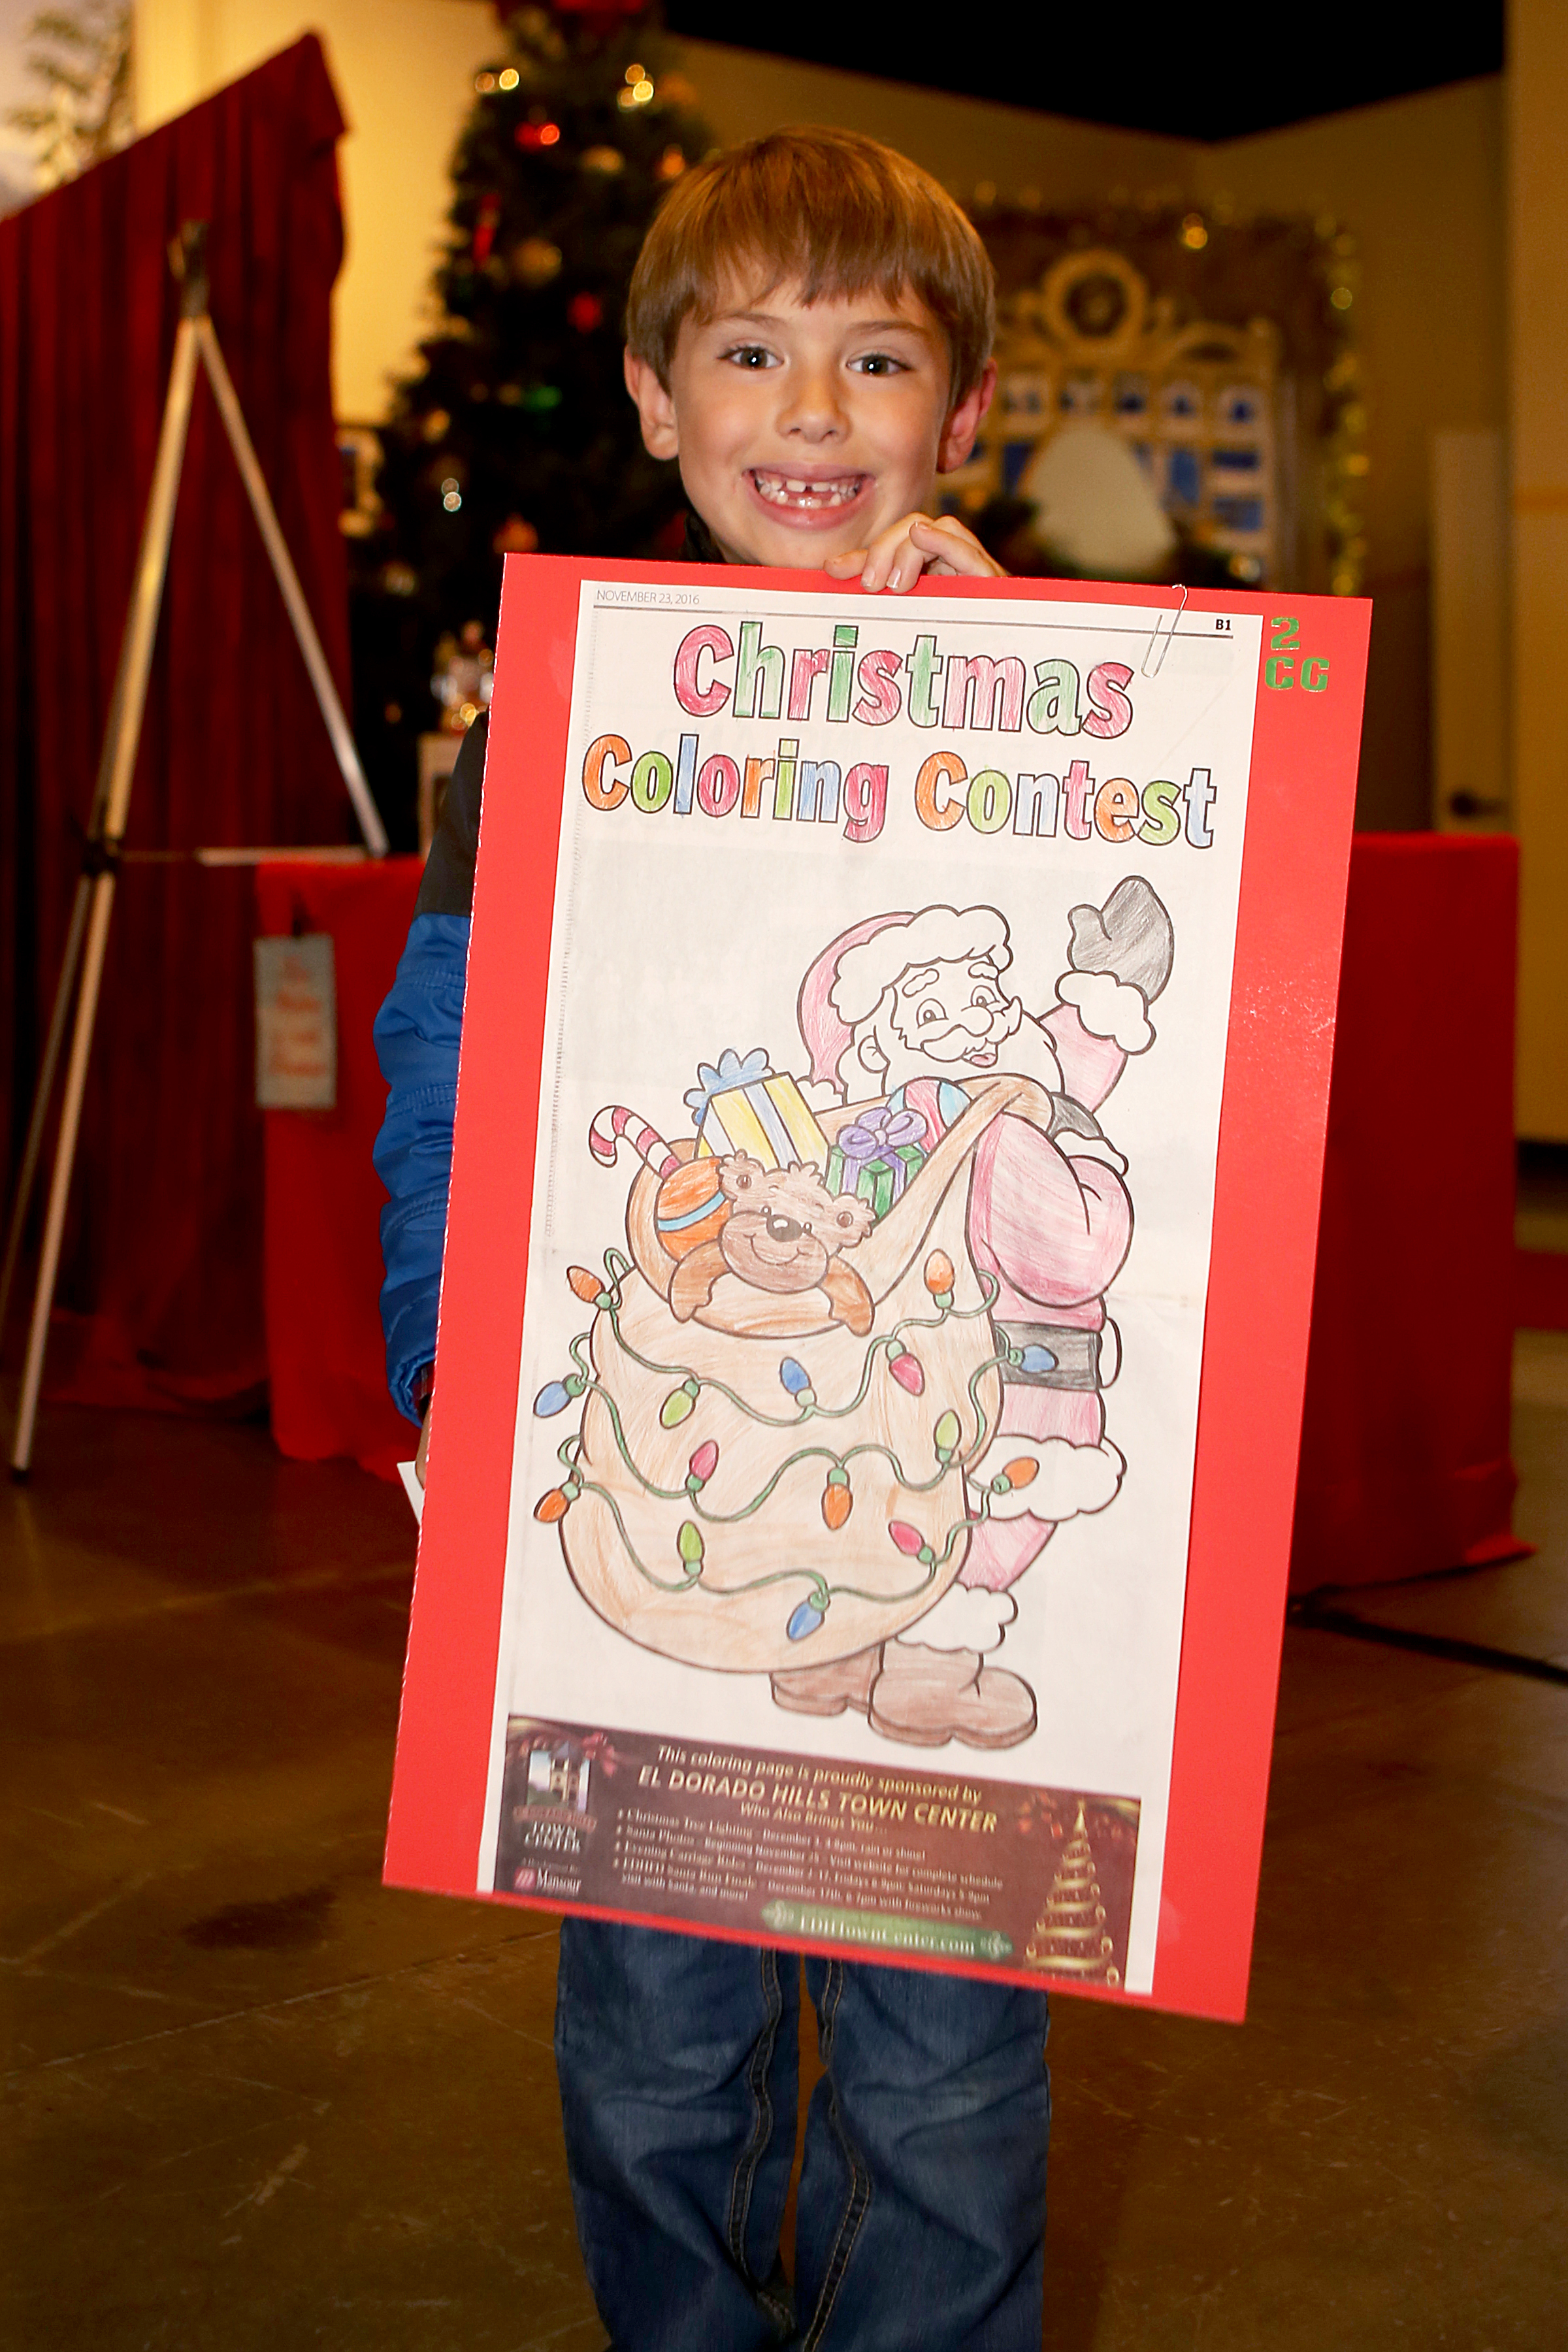 Carson Greenfield, 6, of El Dorado Hills is all smiles, holding his coloring contest entry, winning 2nd place in the coloring contest at the California Welcome Center in Town Center on Dec. 14. Democrat photo by Shelly Thorene